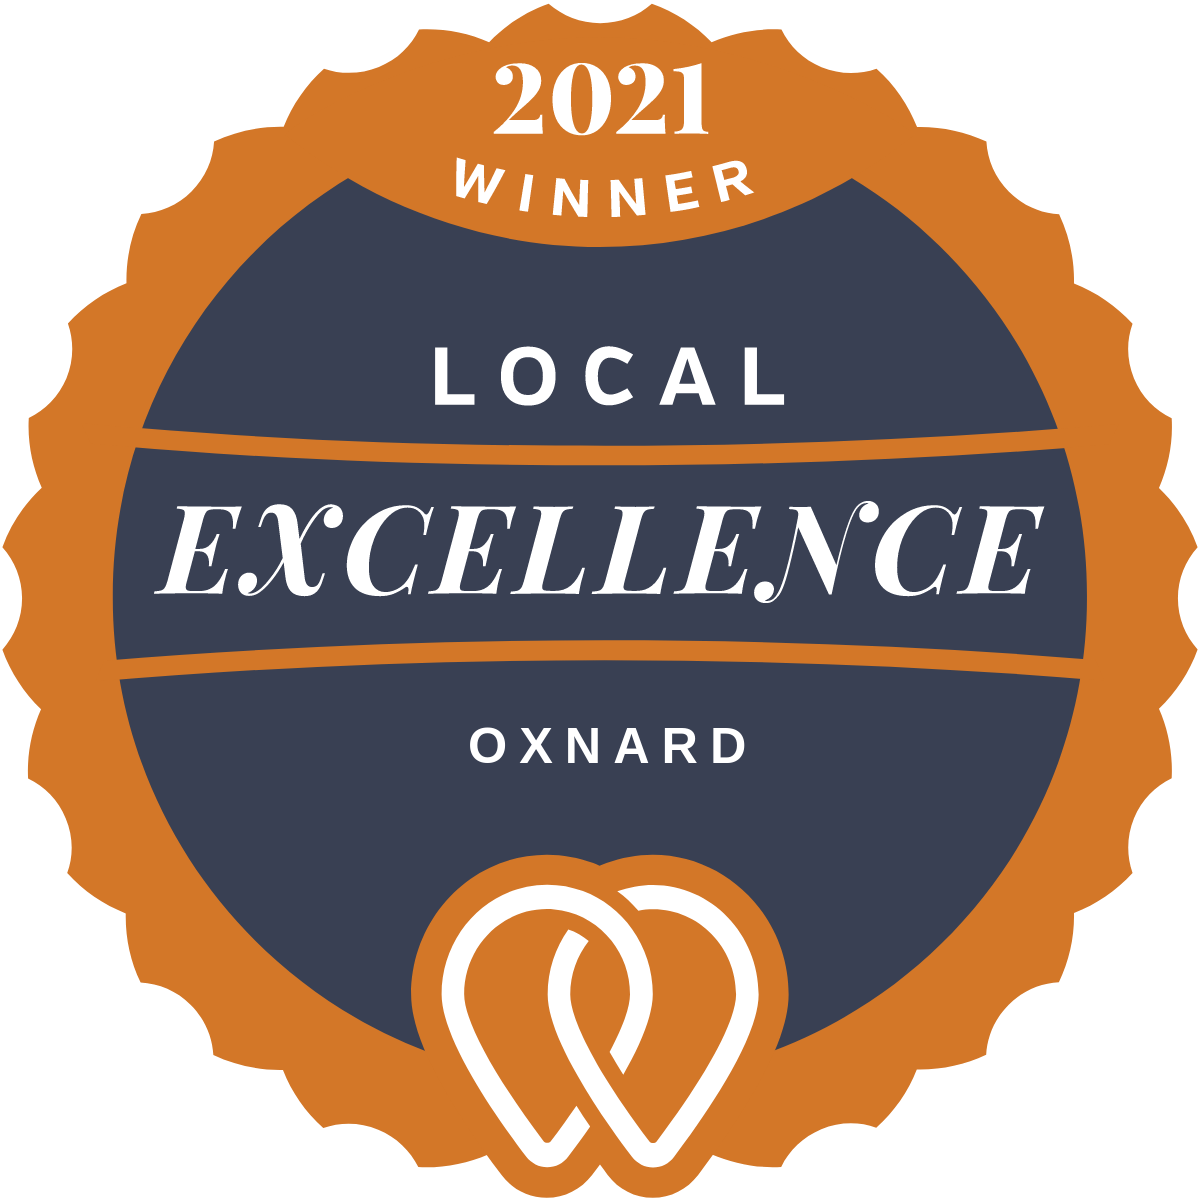 2021 Local Excellence Winner in Oxnard, CA